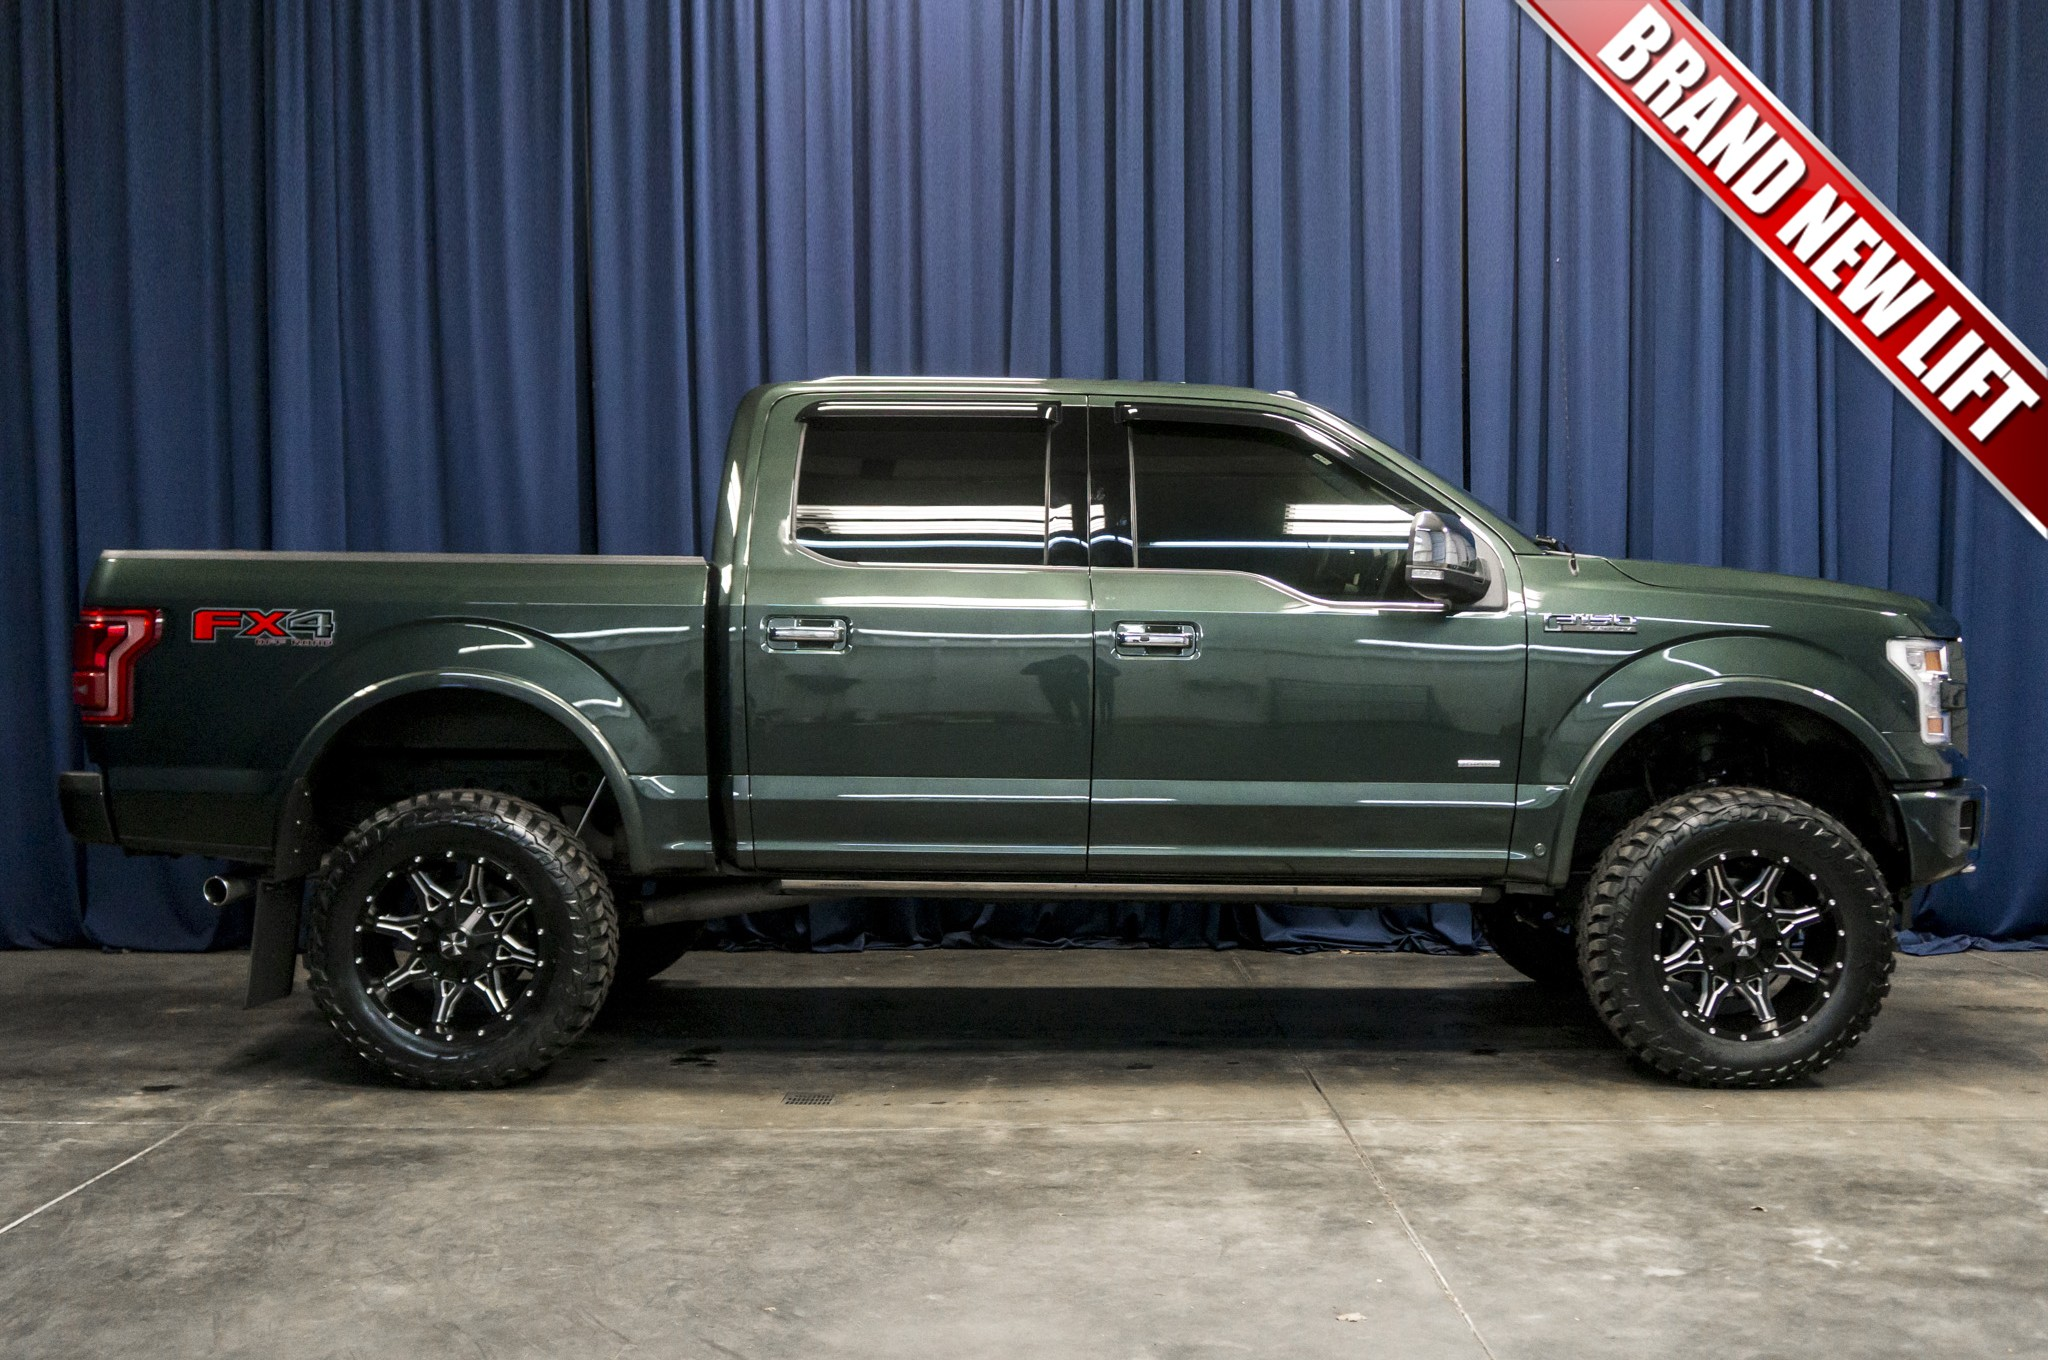 2015 F150 For Sale >> Used Lifted 2015 Ford F 150 Platinum 4x4 Truck For Sale 37772